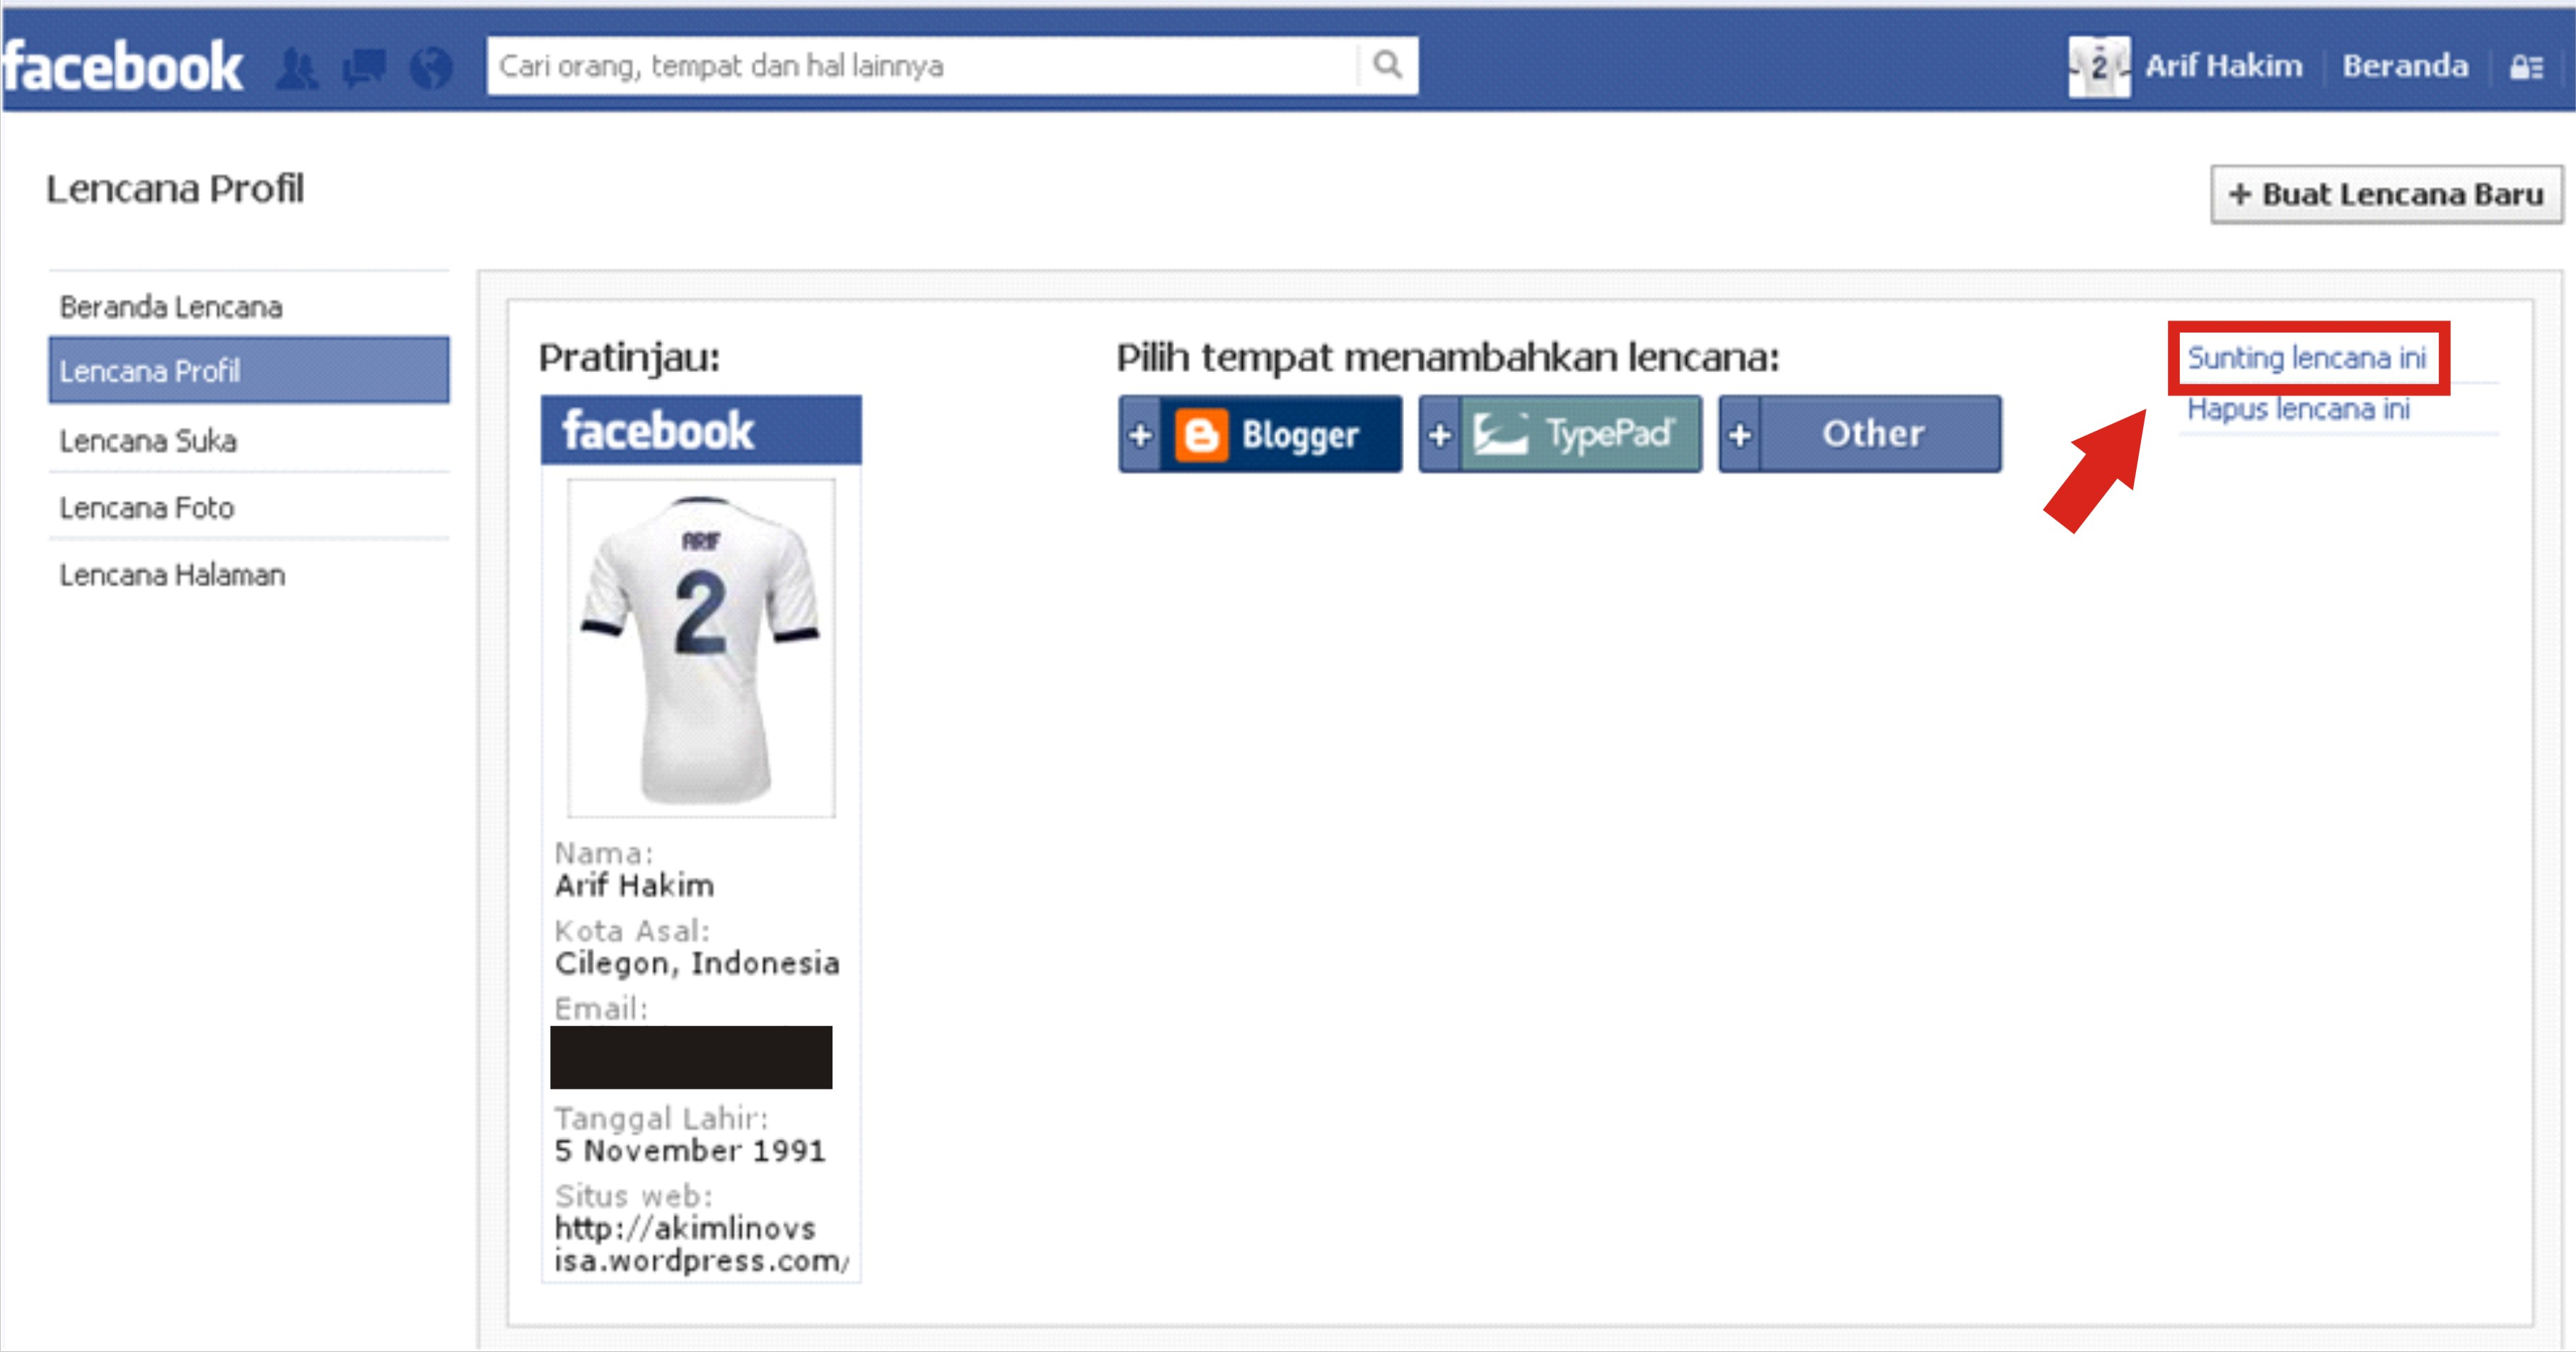 Cara Membuat Lencana Facebook Di WordPress Akimlinovsisas WP